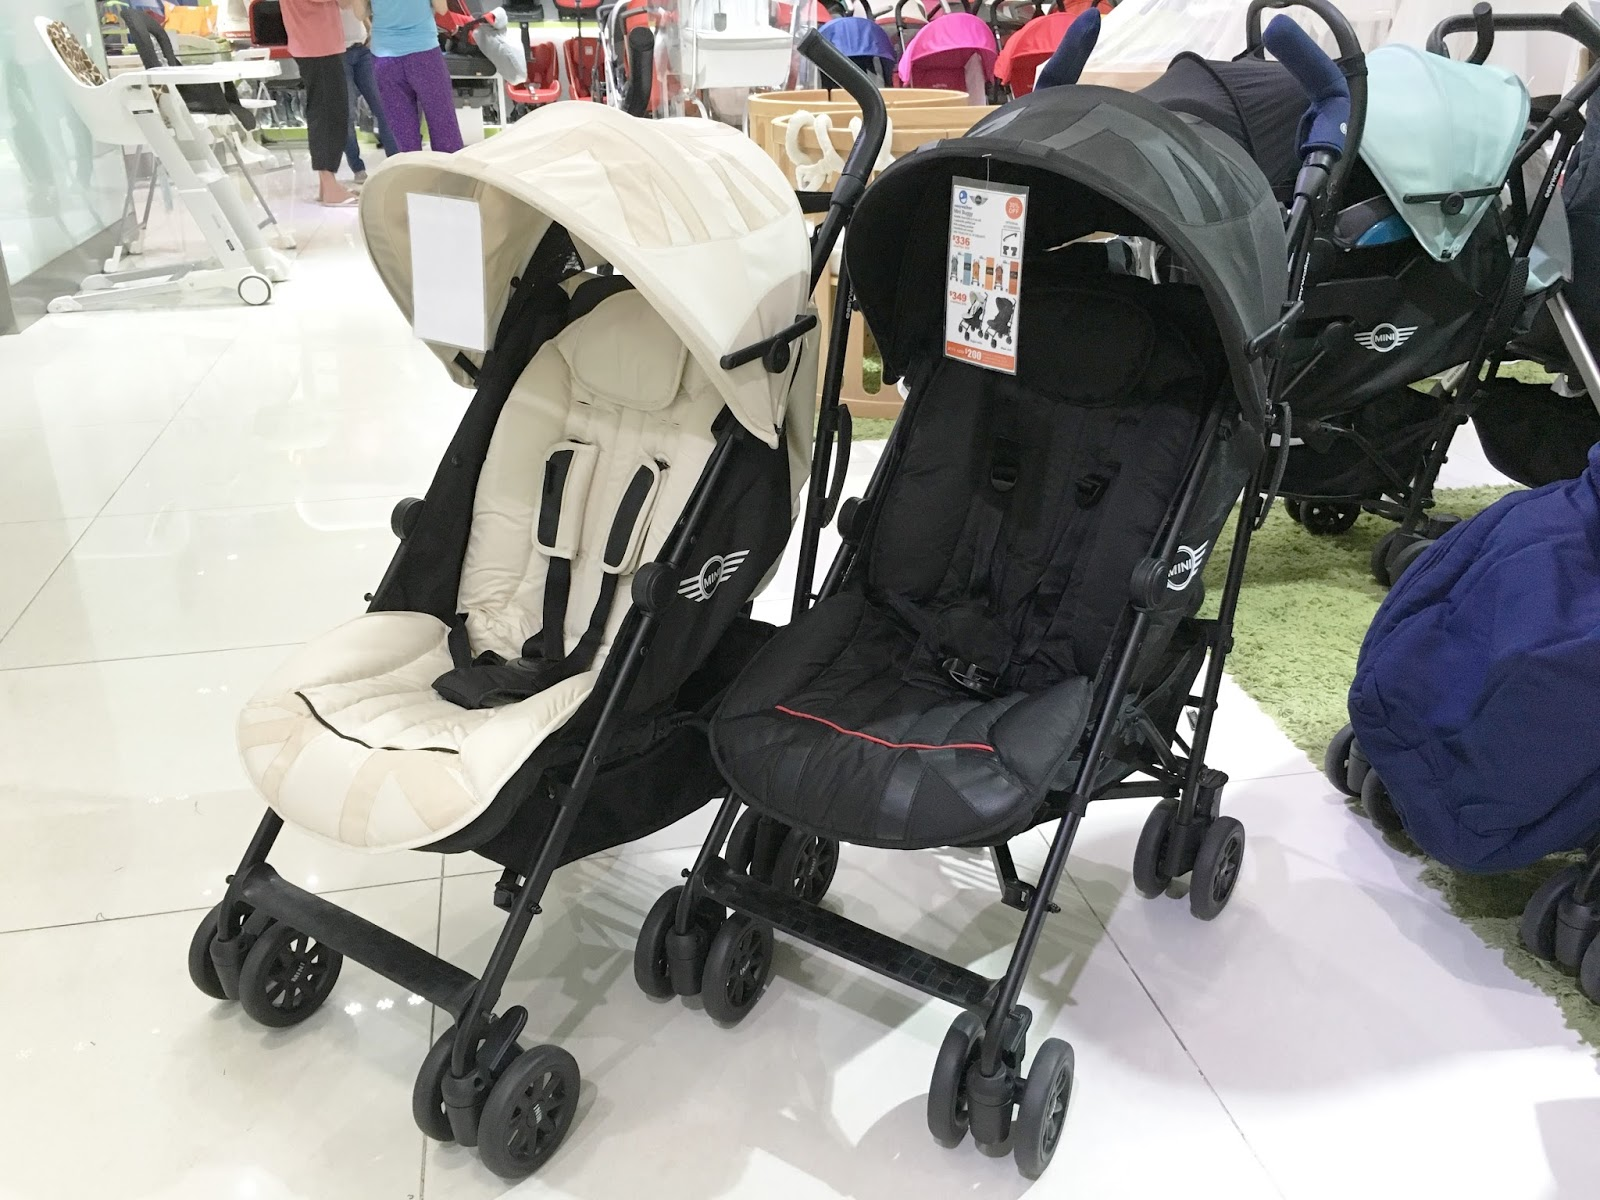 Newborn Baby Buggy Reviews Vanny S Telling Everything Baby Product Review Easywalker